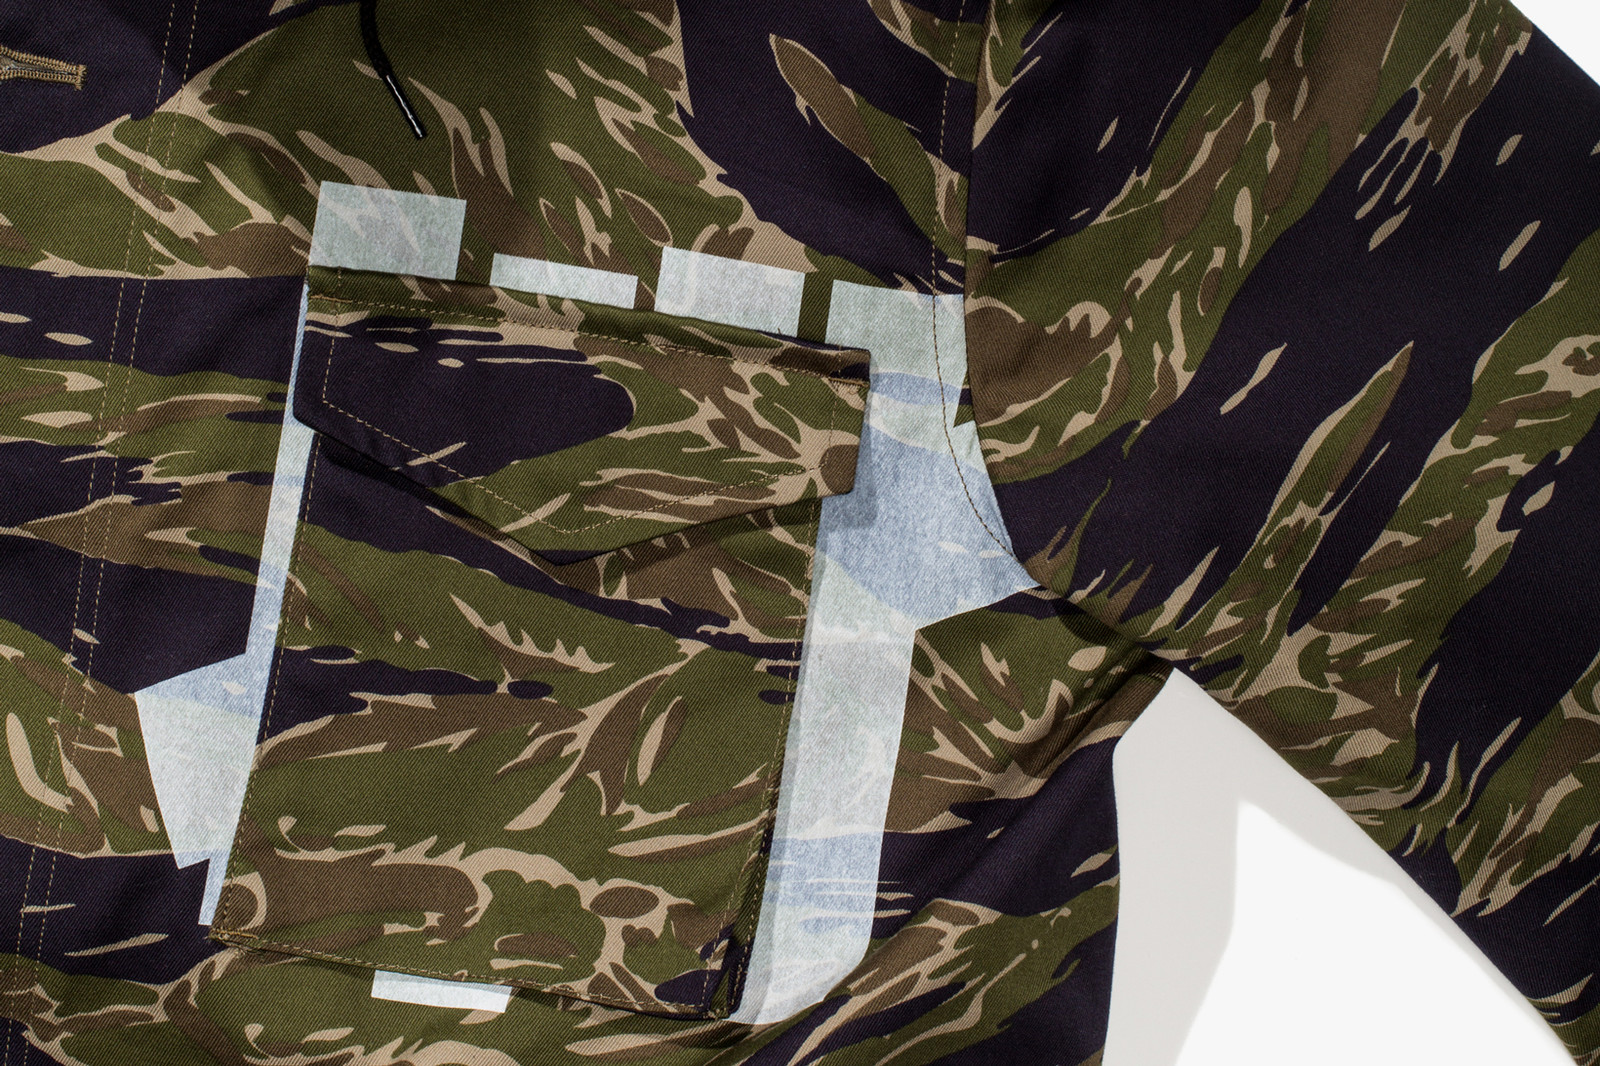 UNDEFEATED UNDFTD GOODENOUGH Tiger Camo Capsule Collection Flight Jacket Flight Pants Hoodie